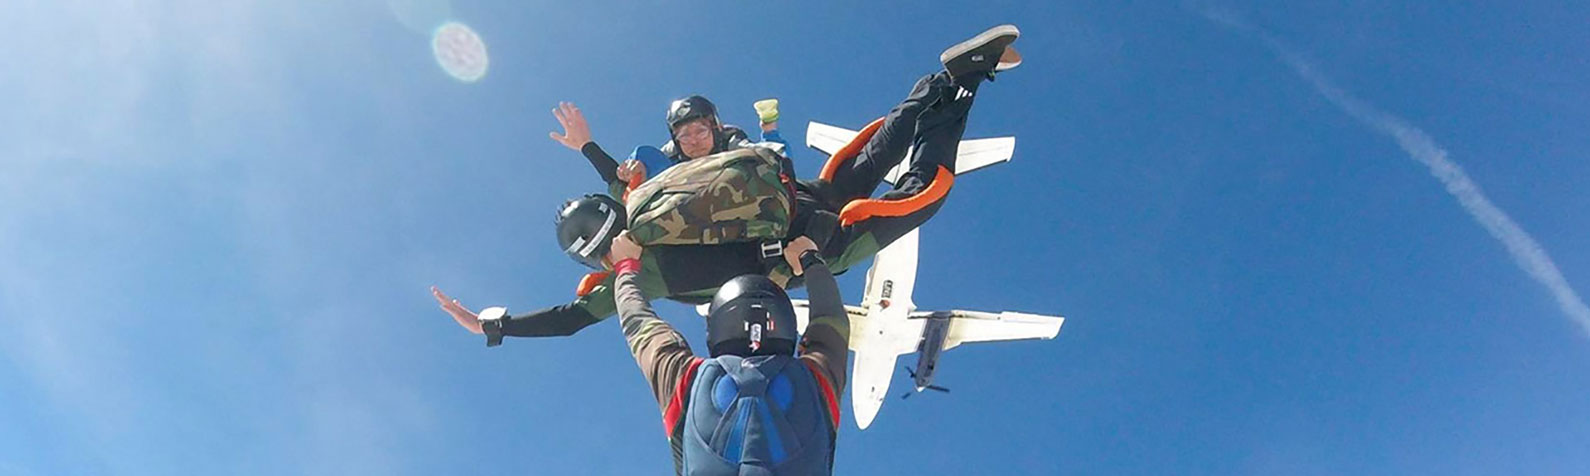 Courses Skydive Taft Los Angeles Skydiving California